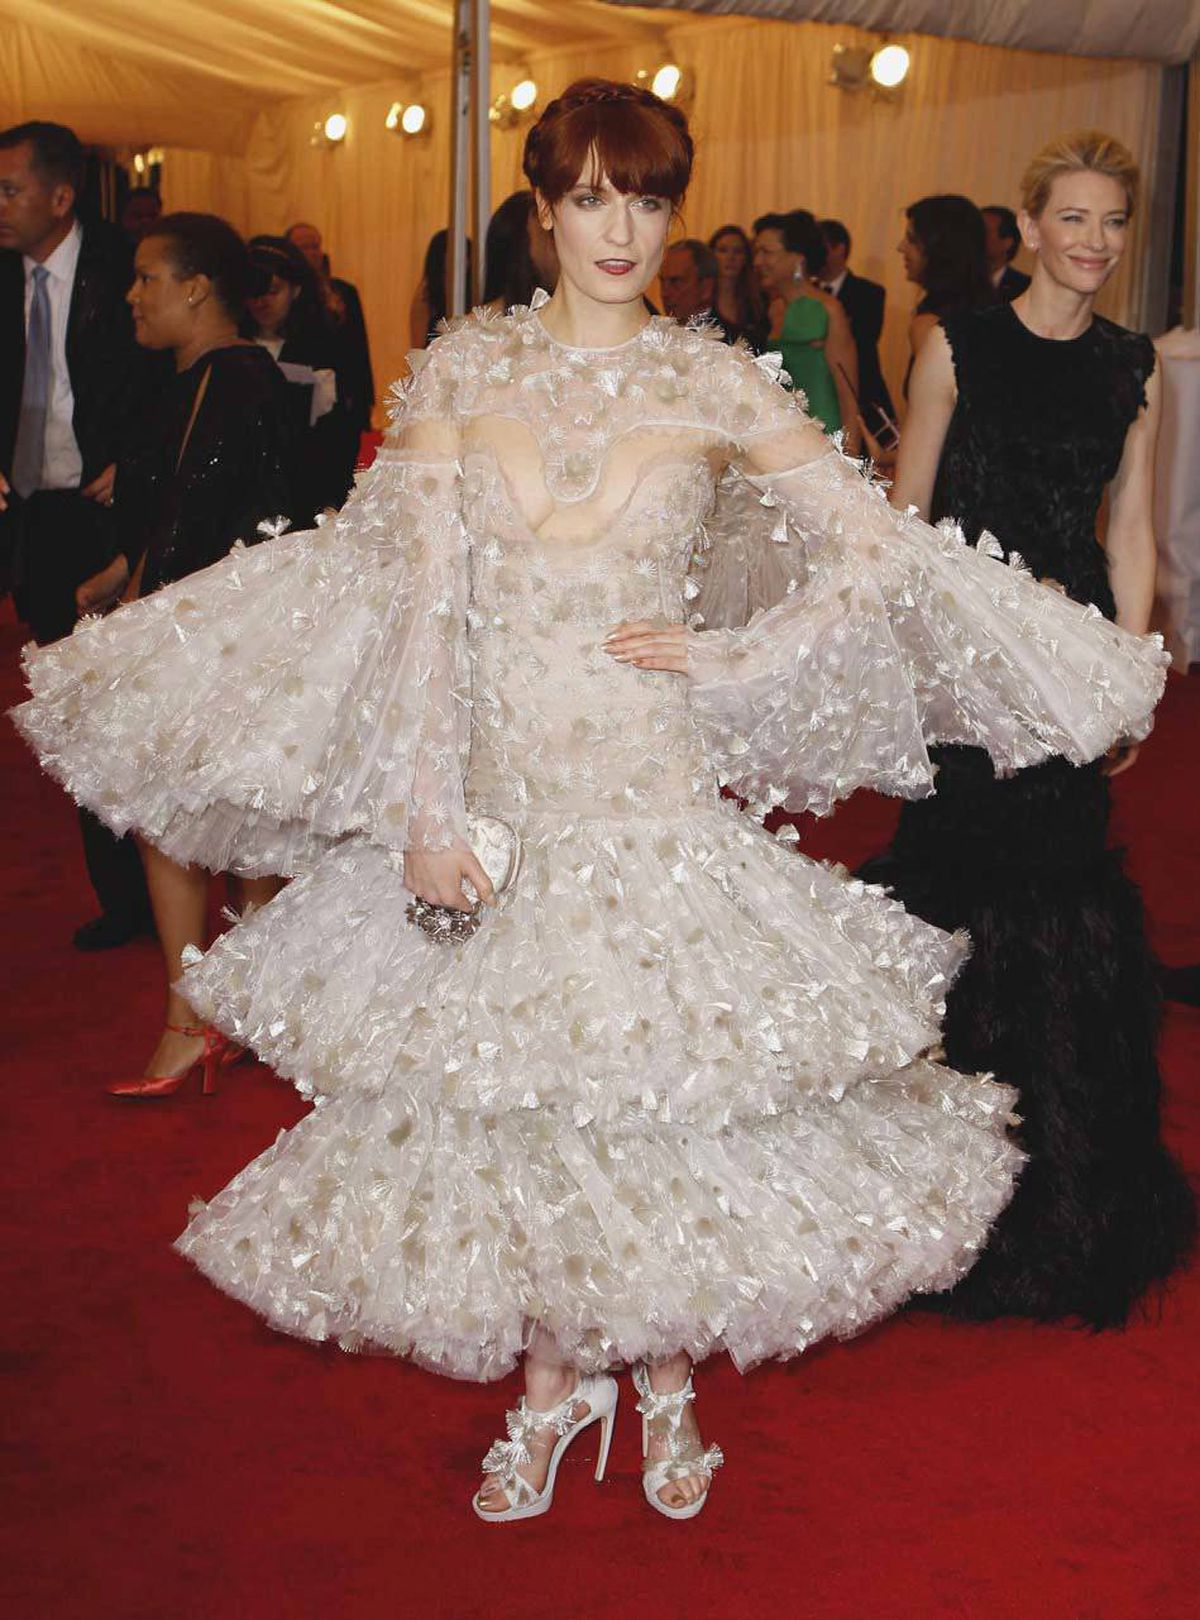 Singer Florence Welch attended at the Metropolitan Museum of Art Costume Institute Benefit dressed as a Christmas candle.